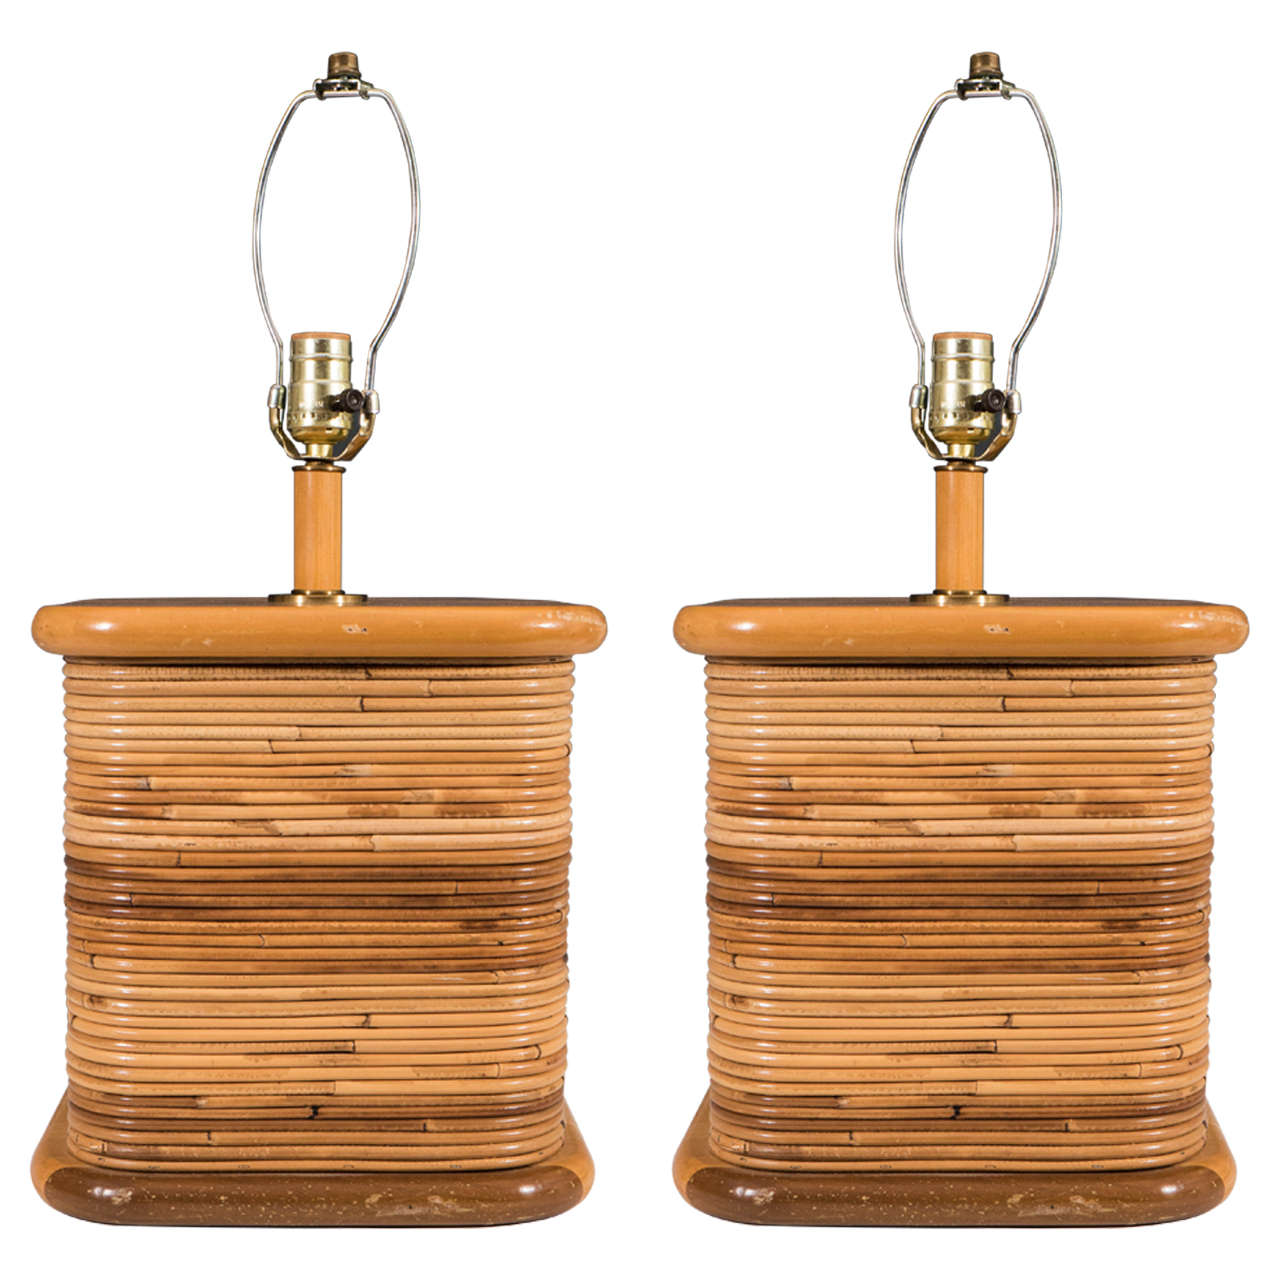 Midcentury pair of wood and rattan table lamps for sale at 1stdibs midcentury pair of wood and rattan table lamps for sale aloadofball Choice Image